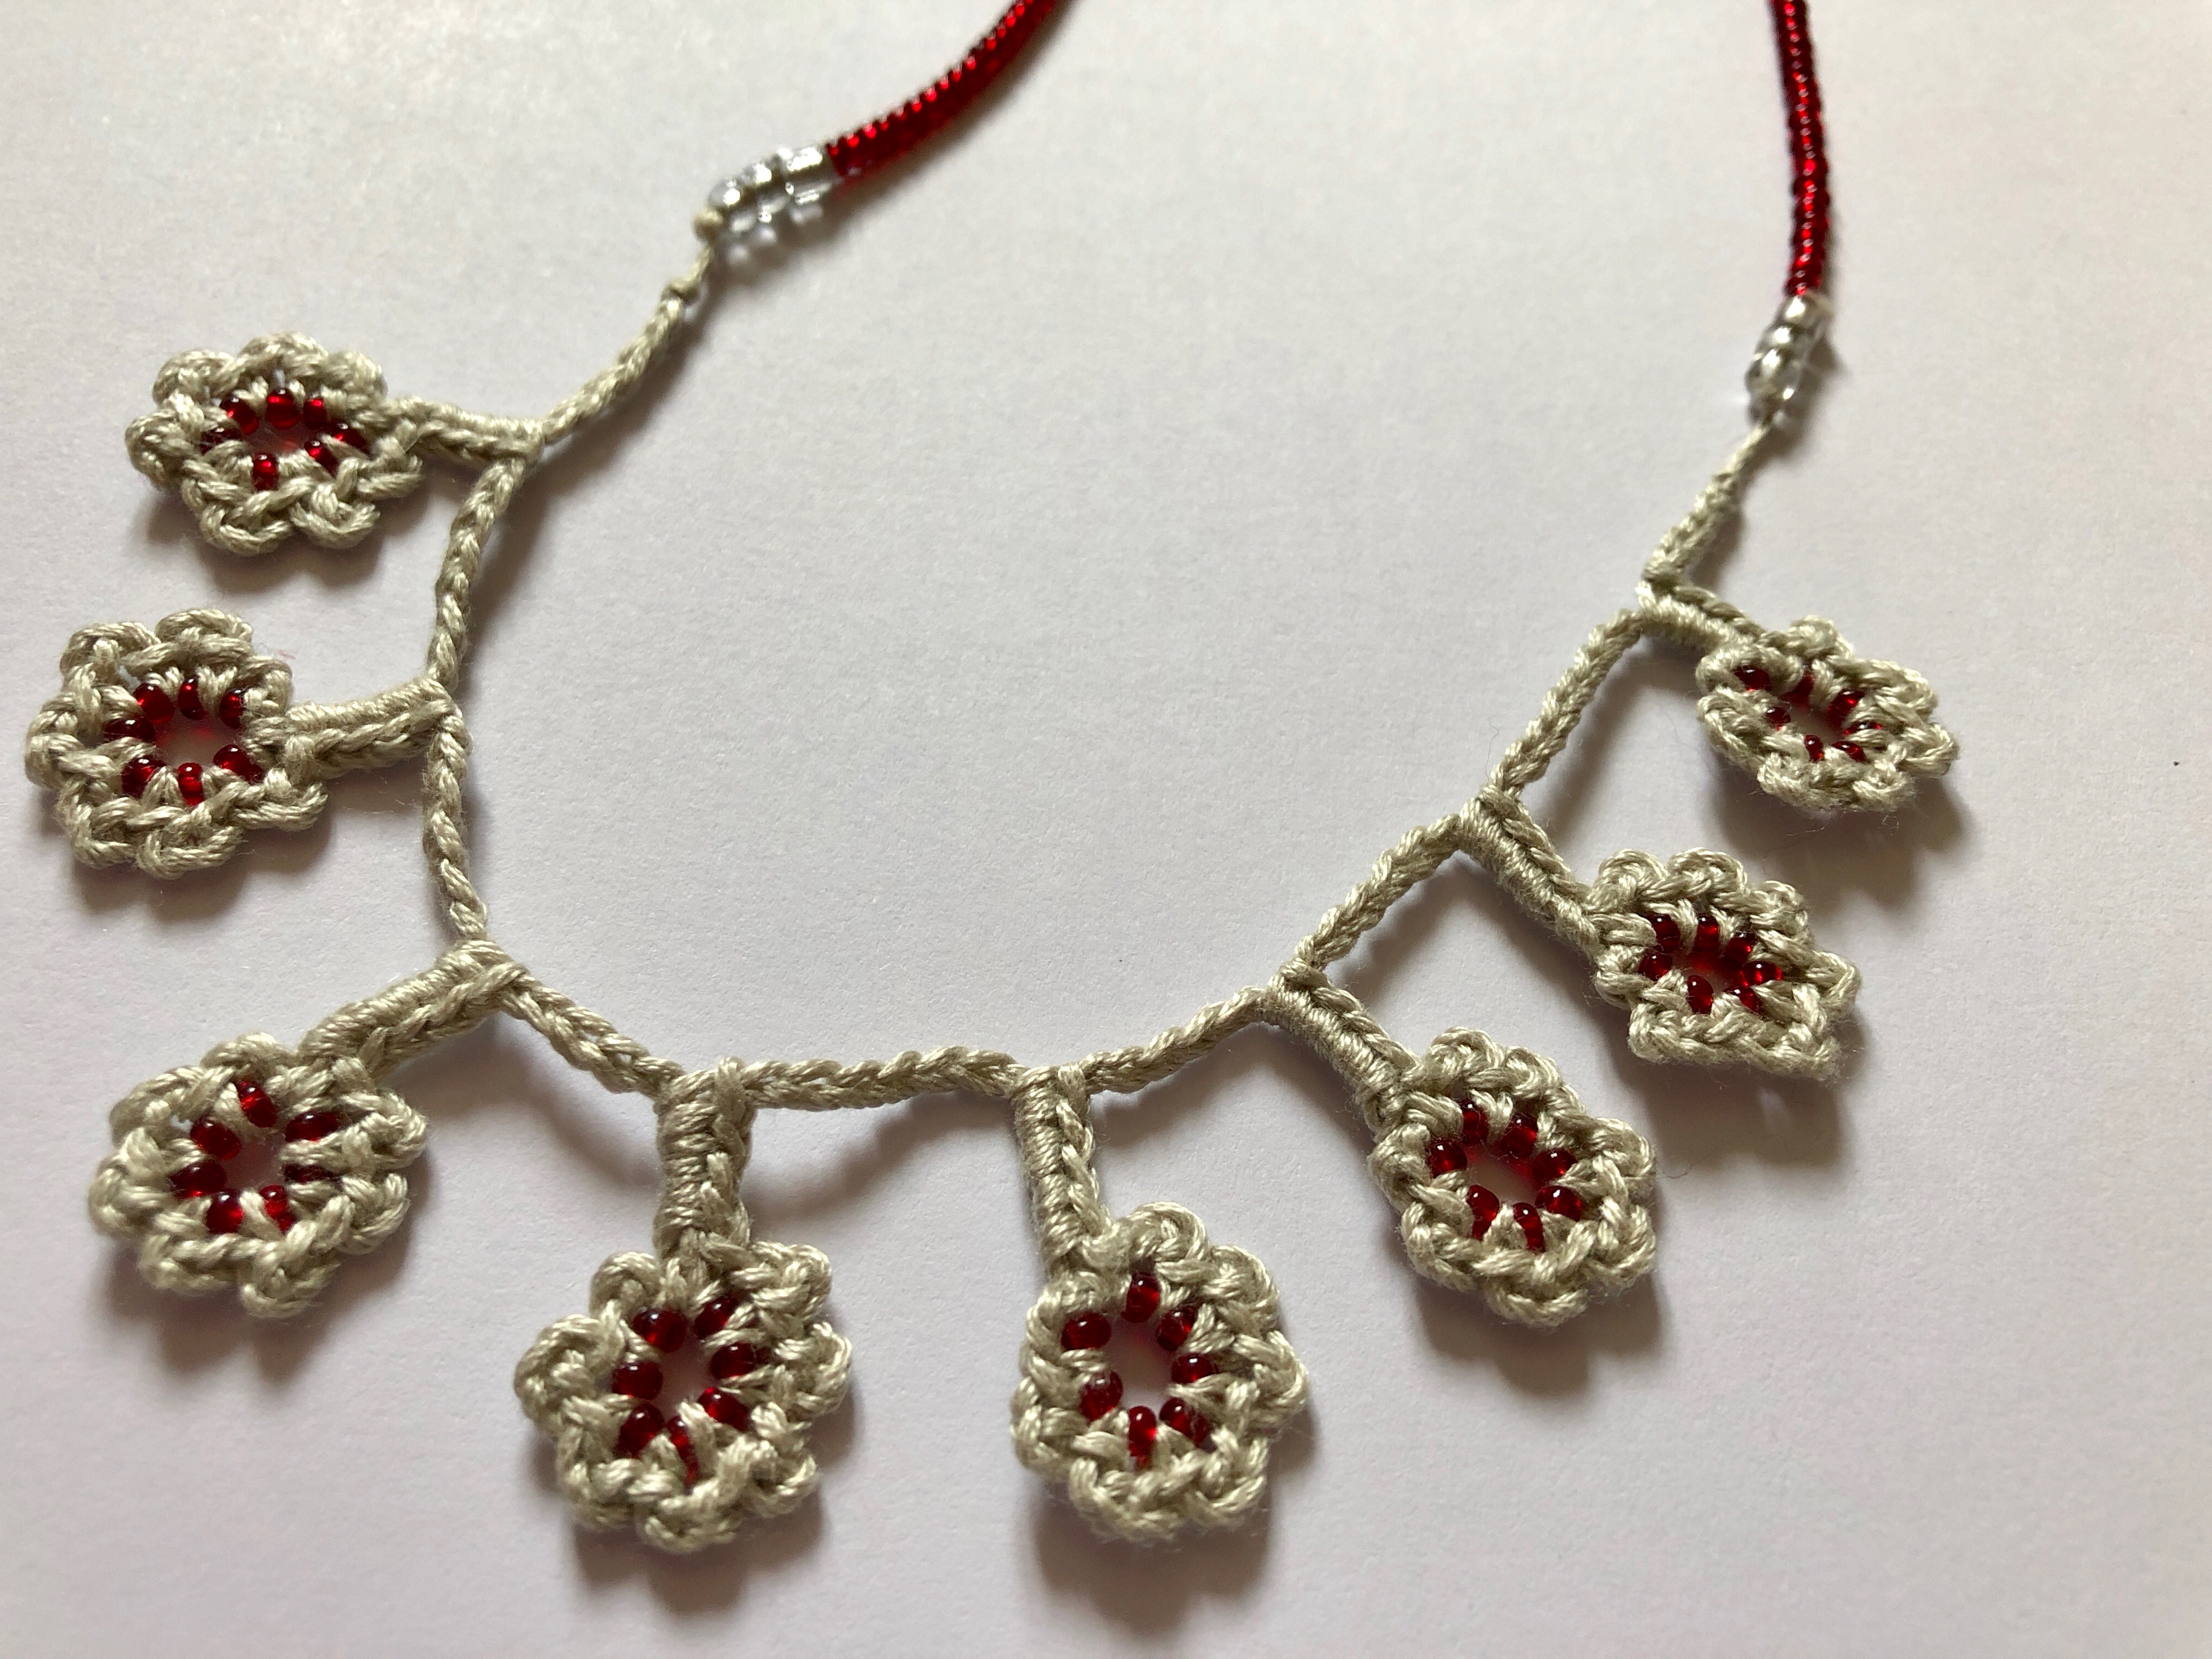 Crocheted and beaded flower necklace.